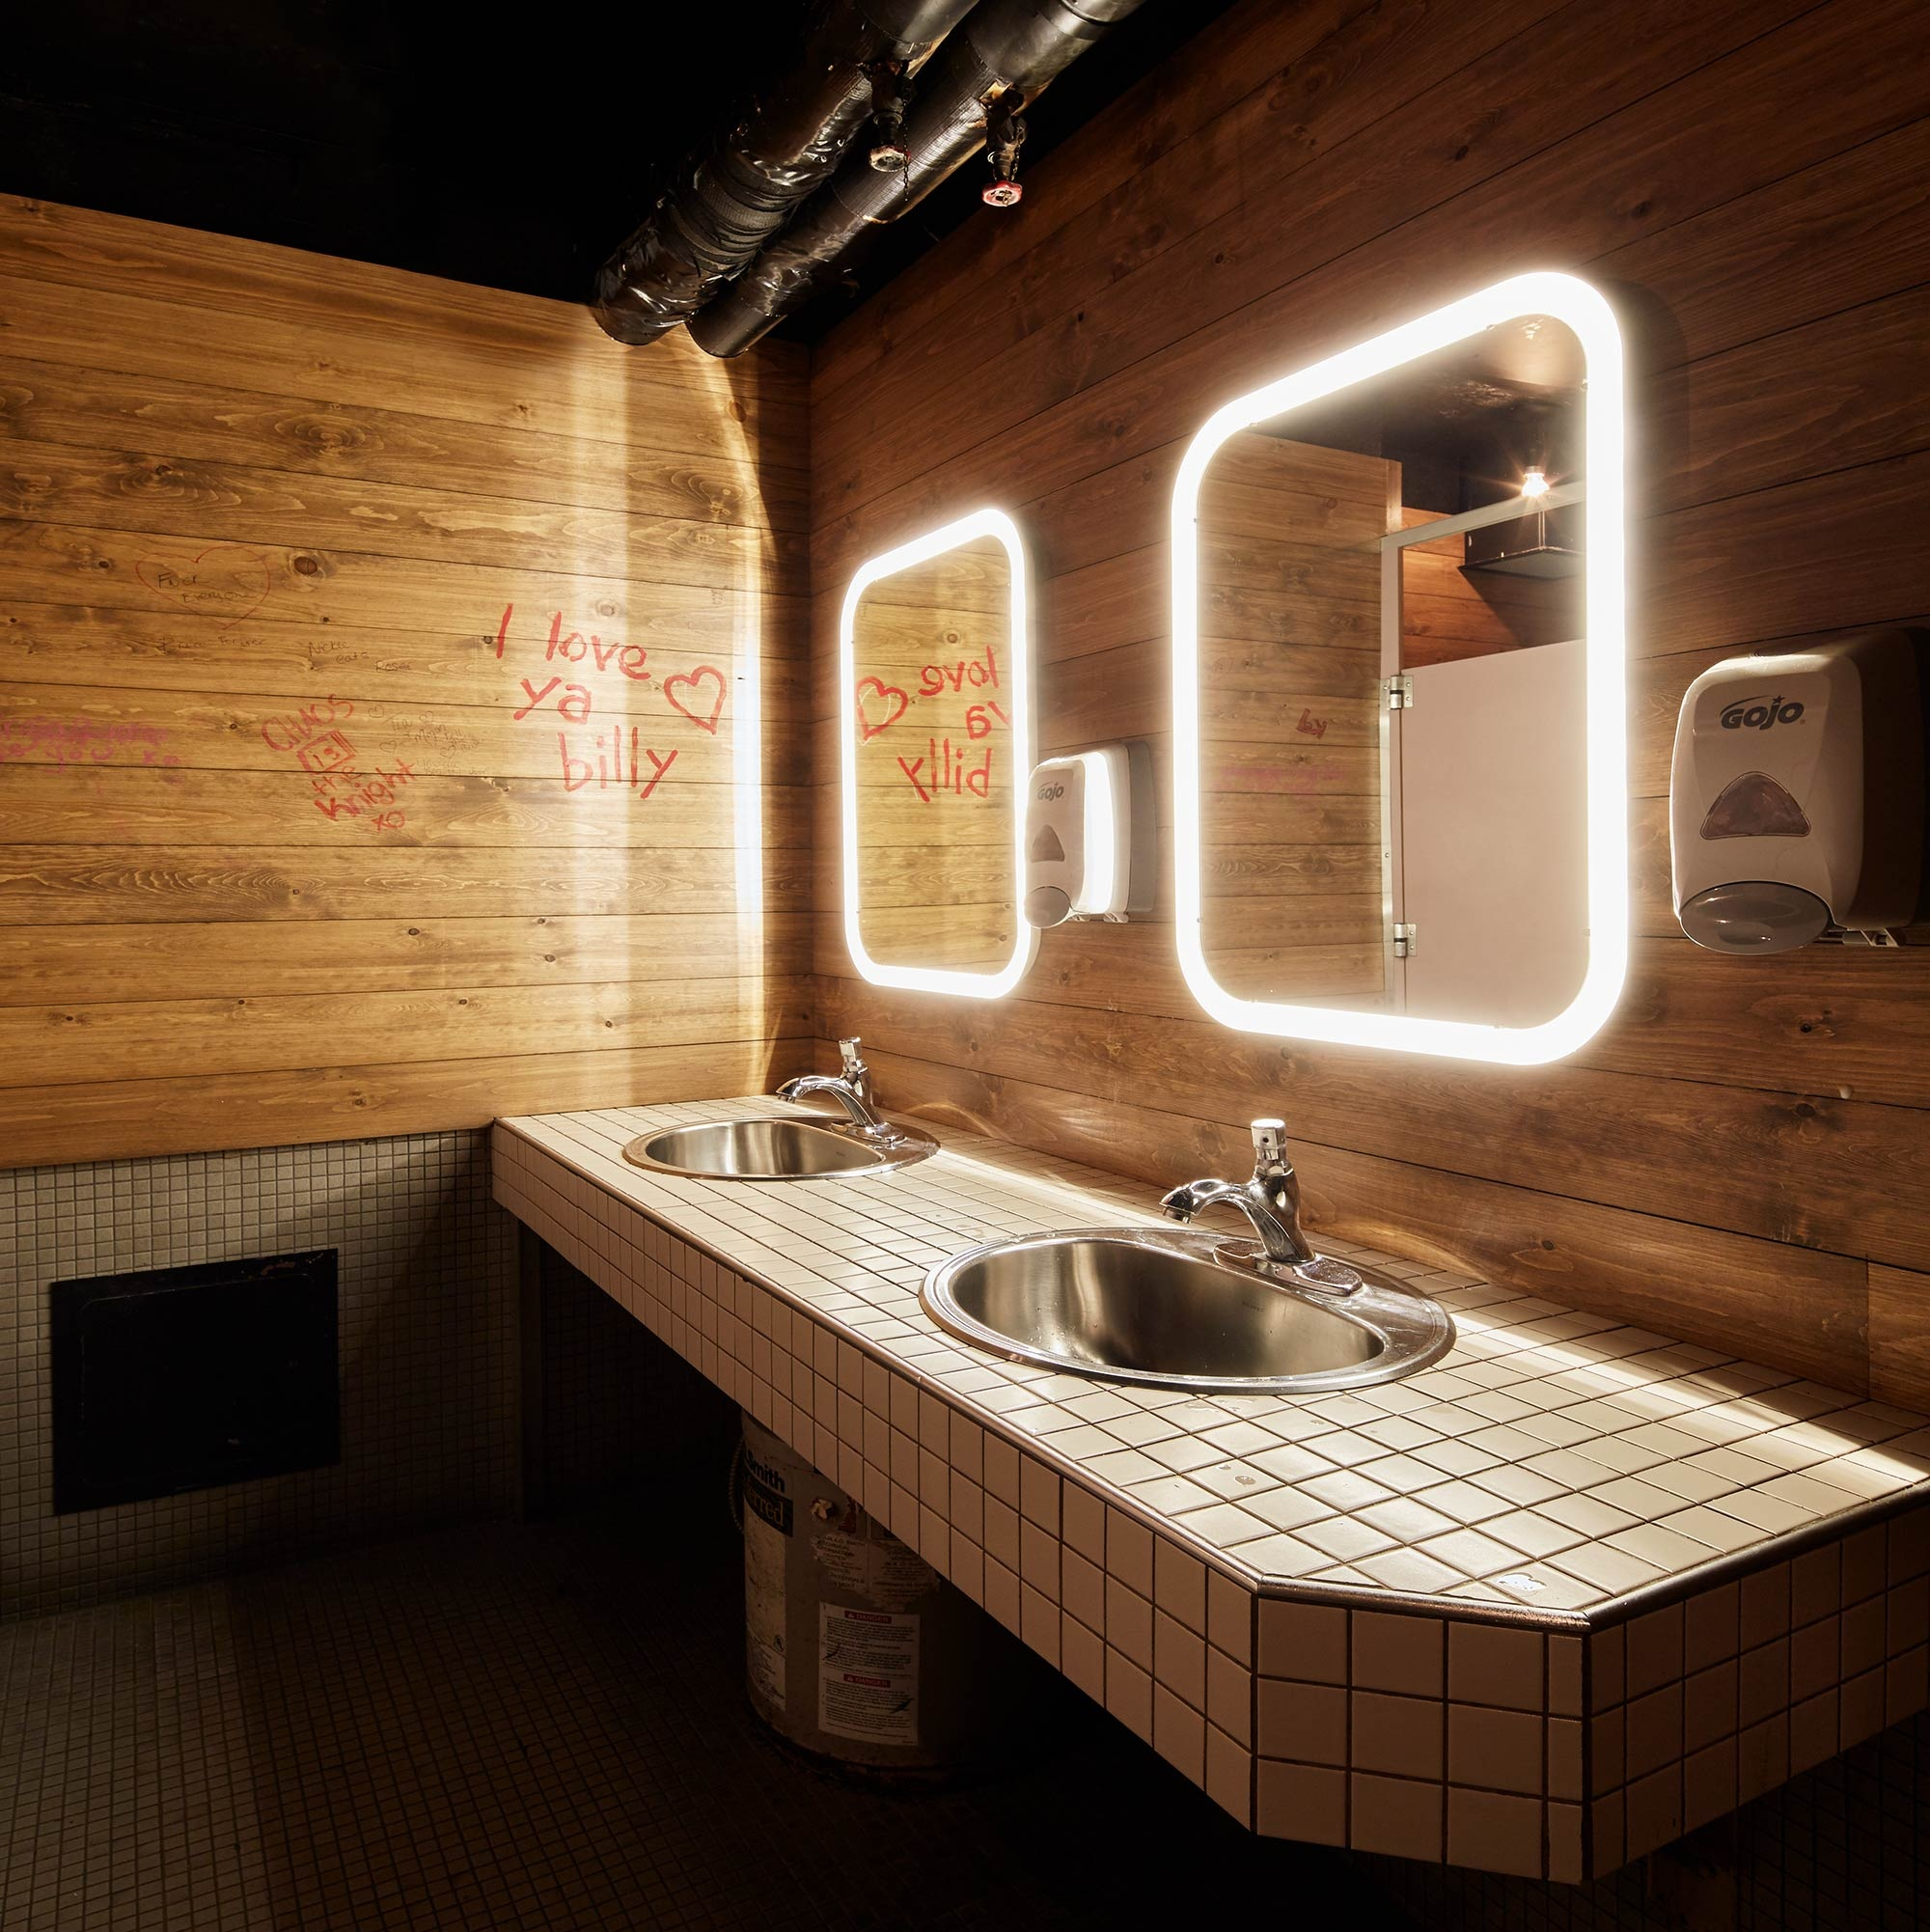 interior-design-restuarant-halifax-washroom.jpg